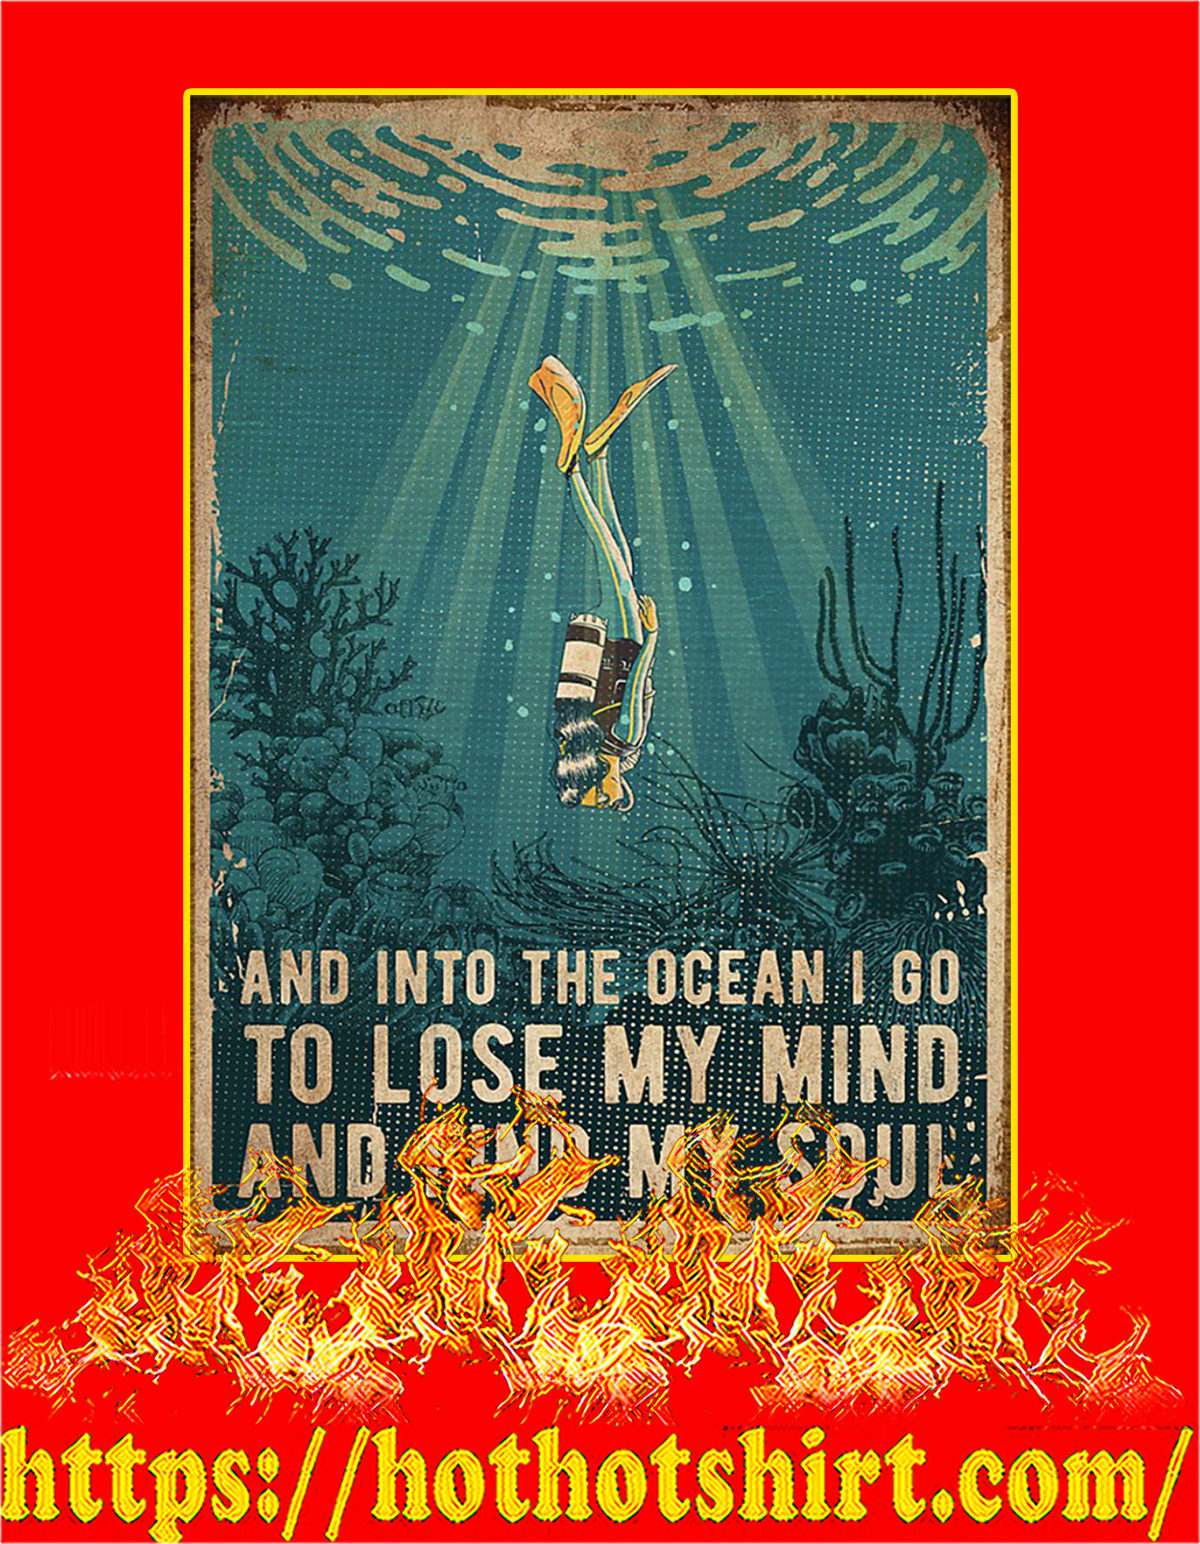 Scuba And into the ocean I go to lose my mind and find my soul poster - A2